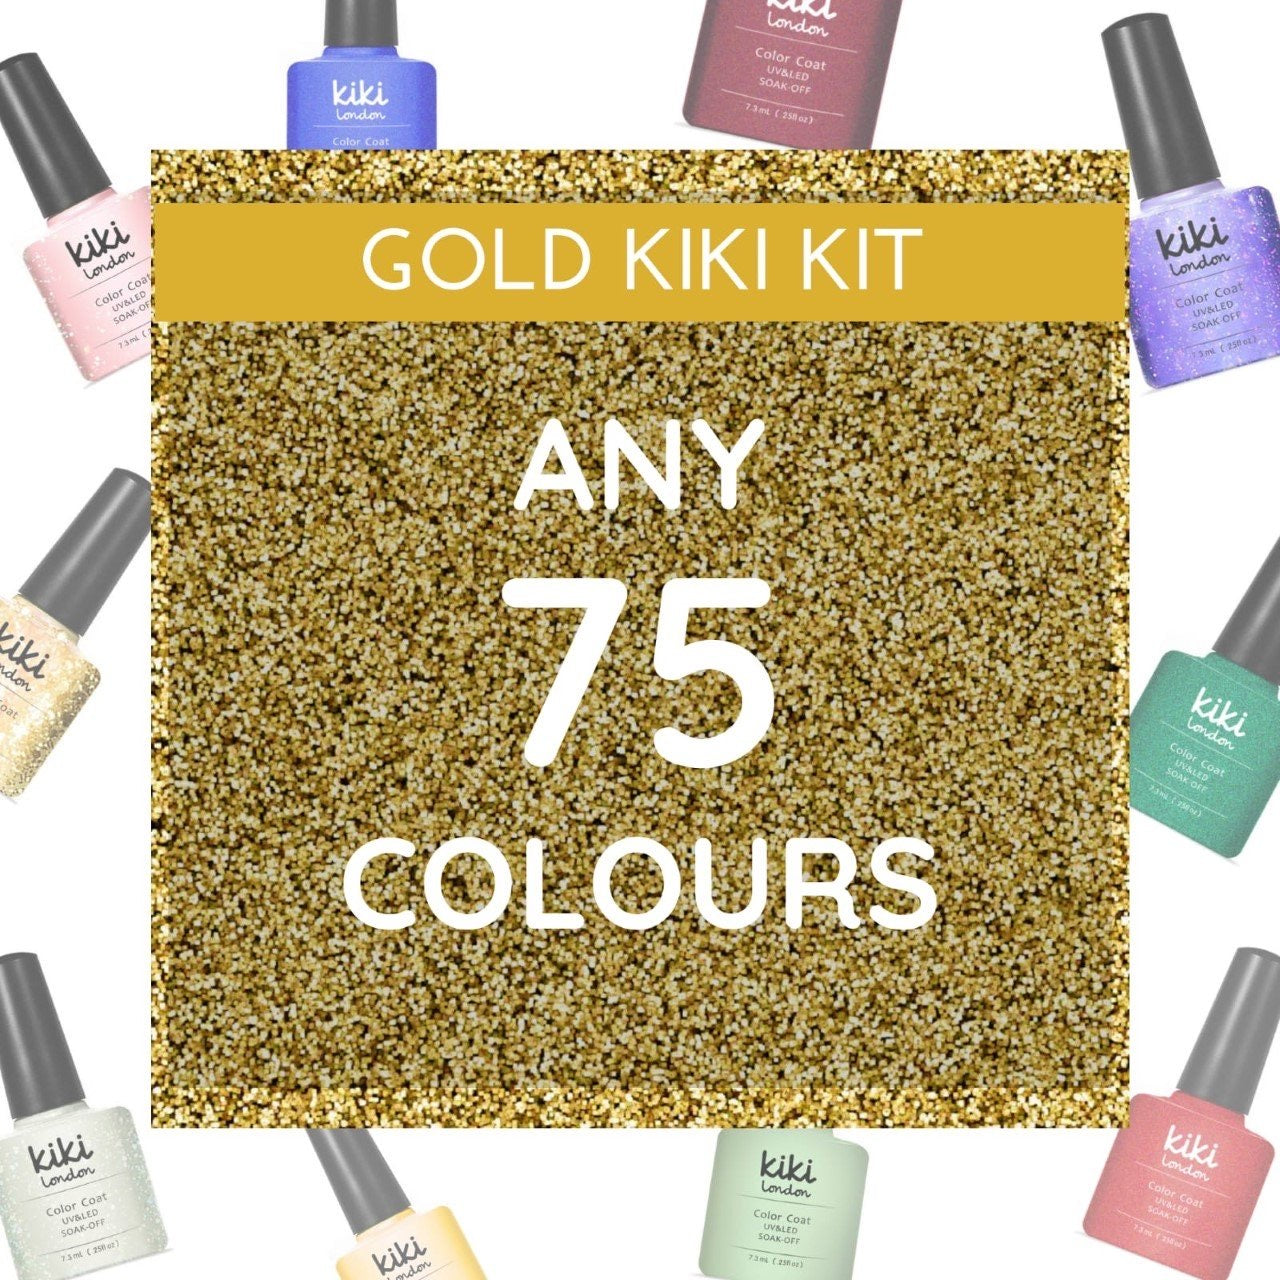 Gold Kiki Kit